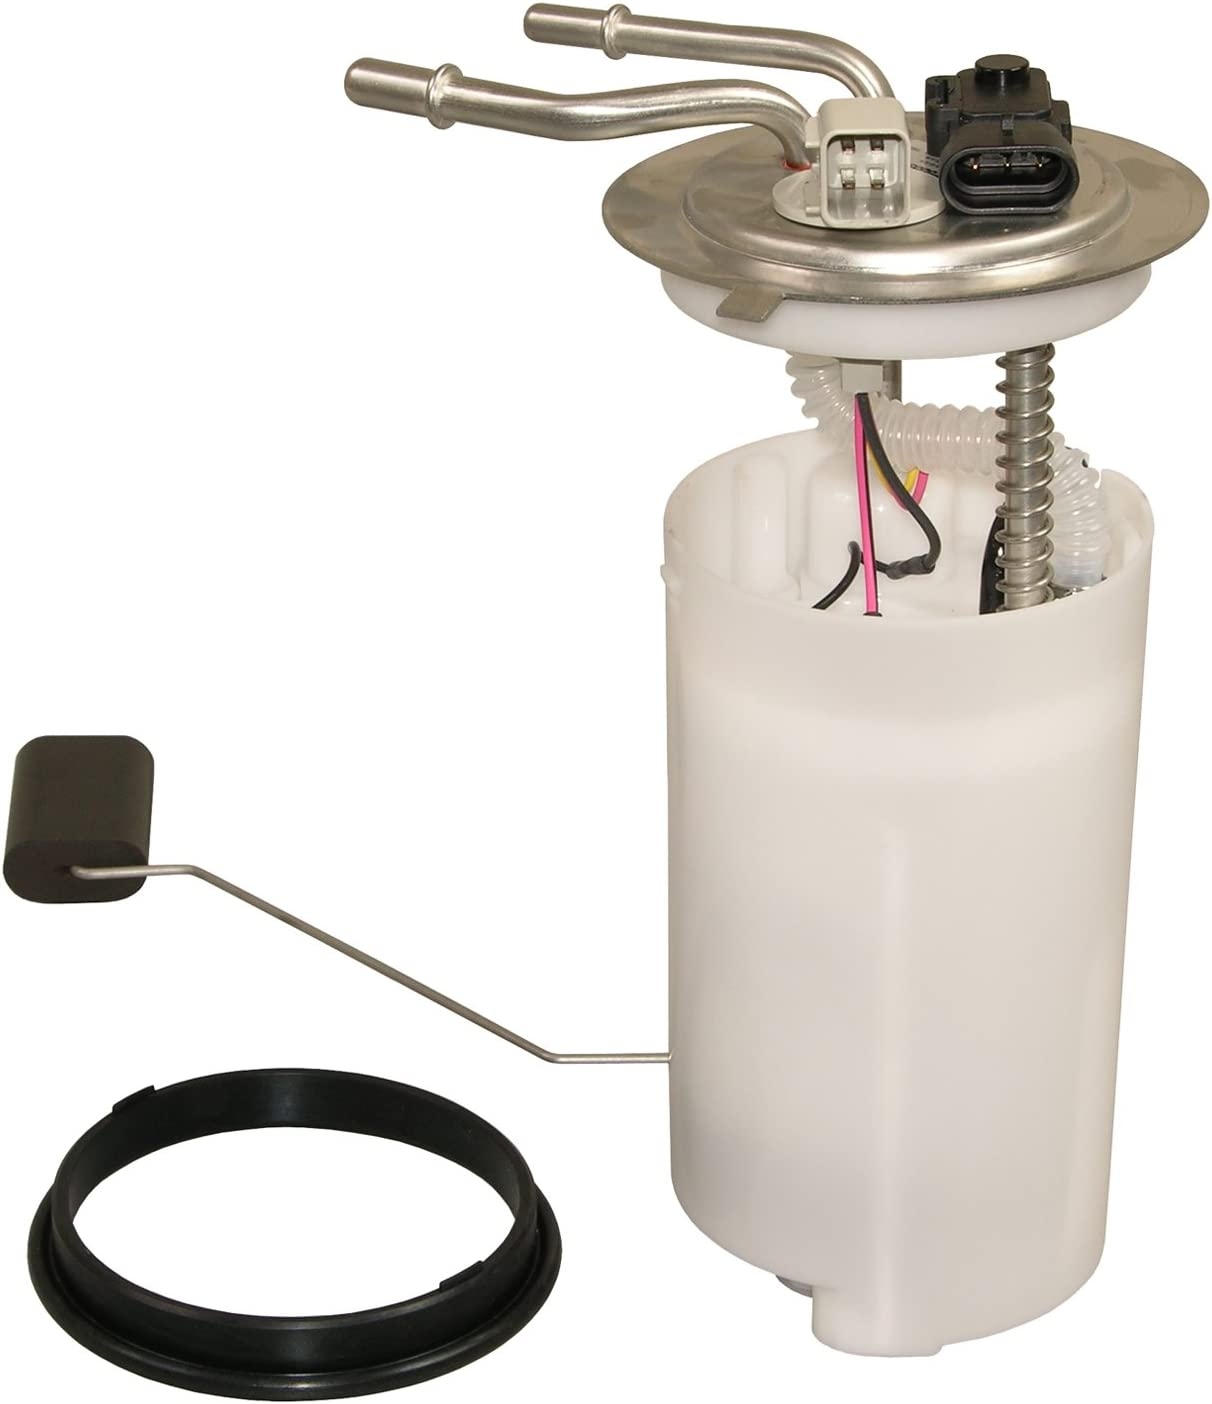 New Electric Fuel Pump Gas Chevy With Sending Unit 88966962 Chevrolet Tahoe GMC